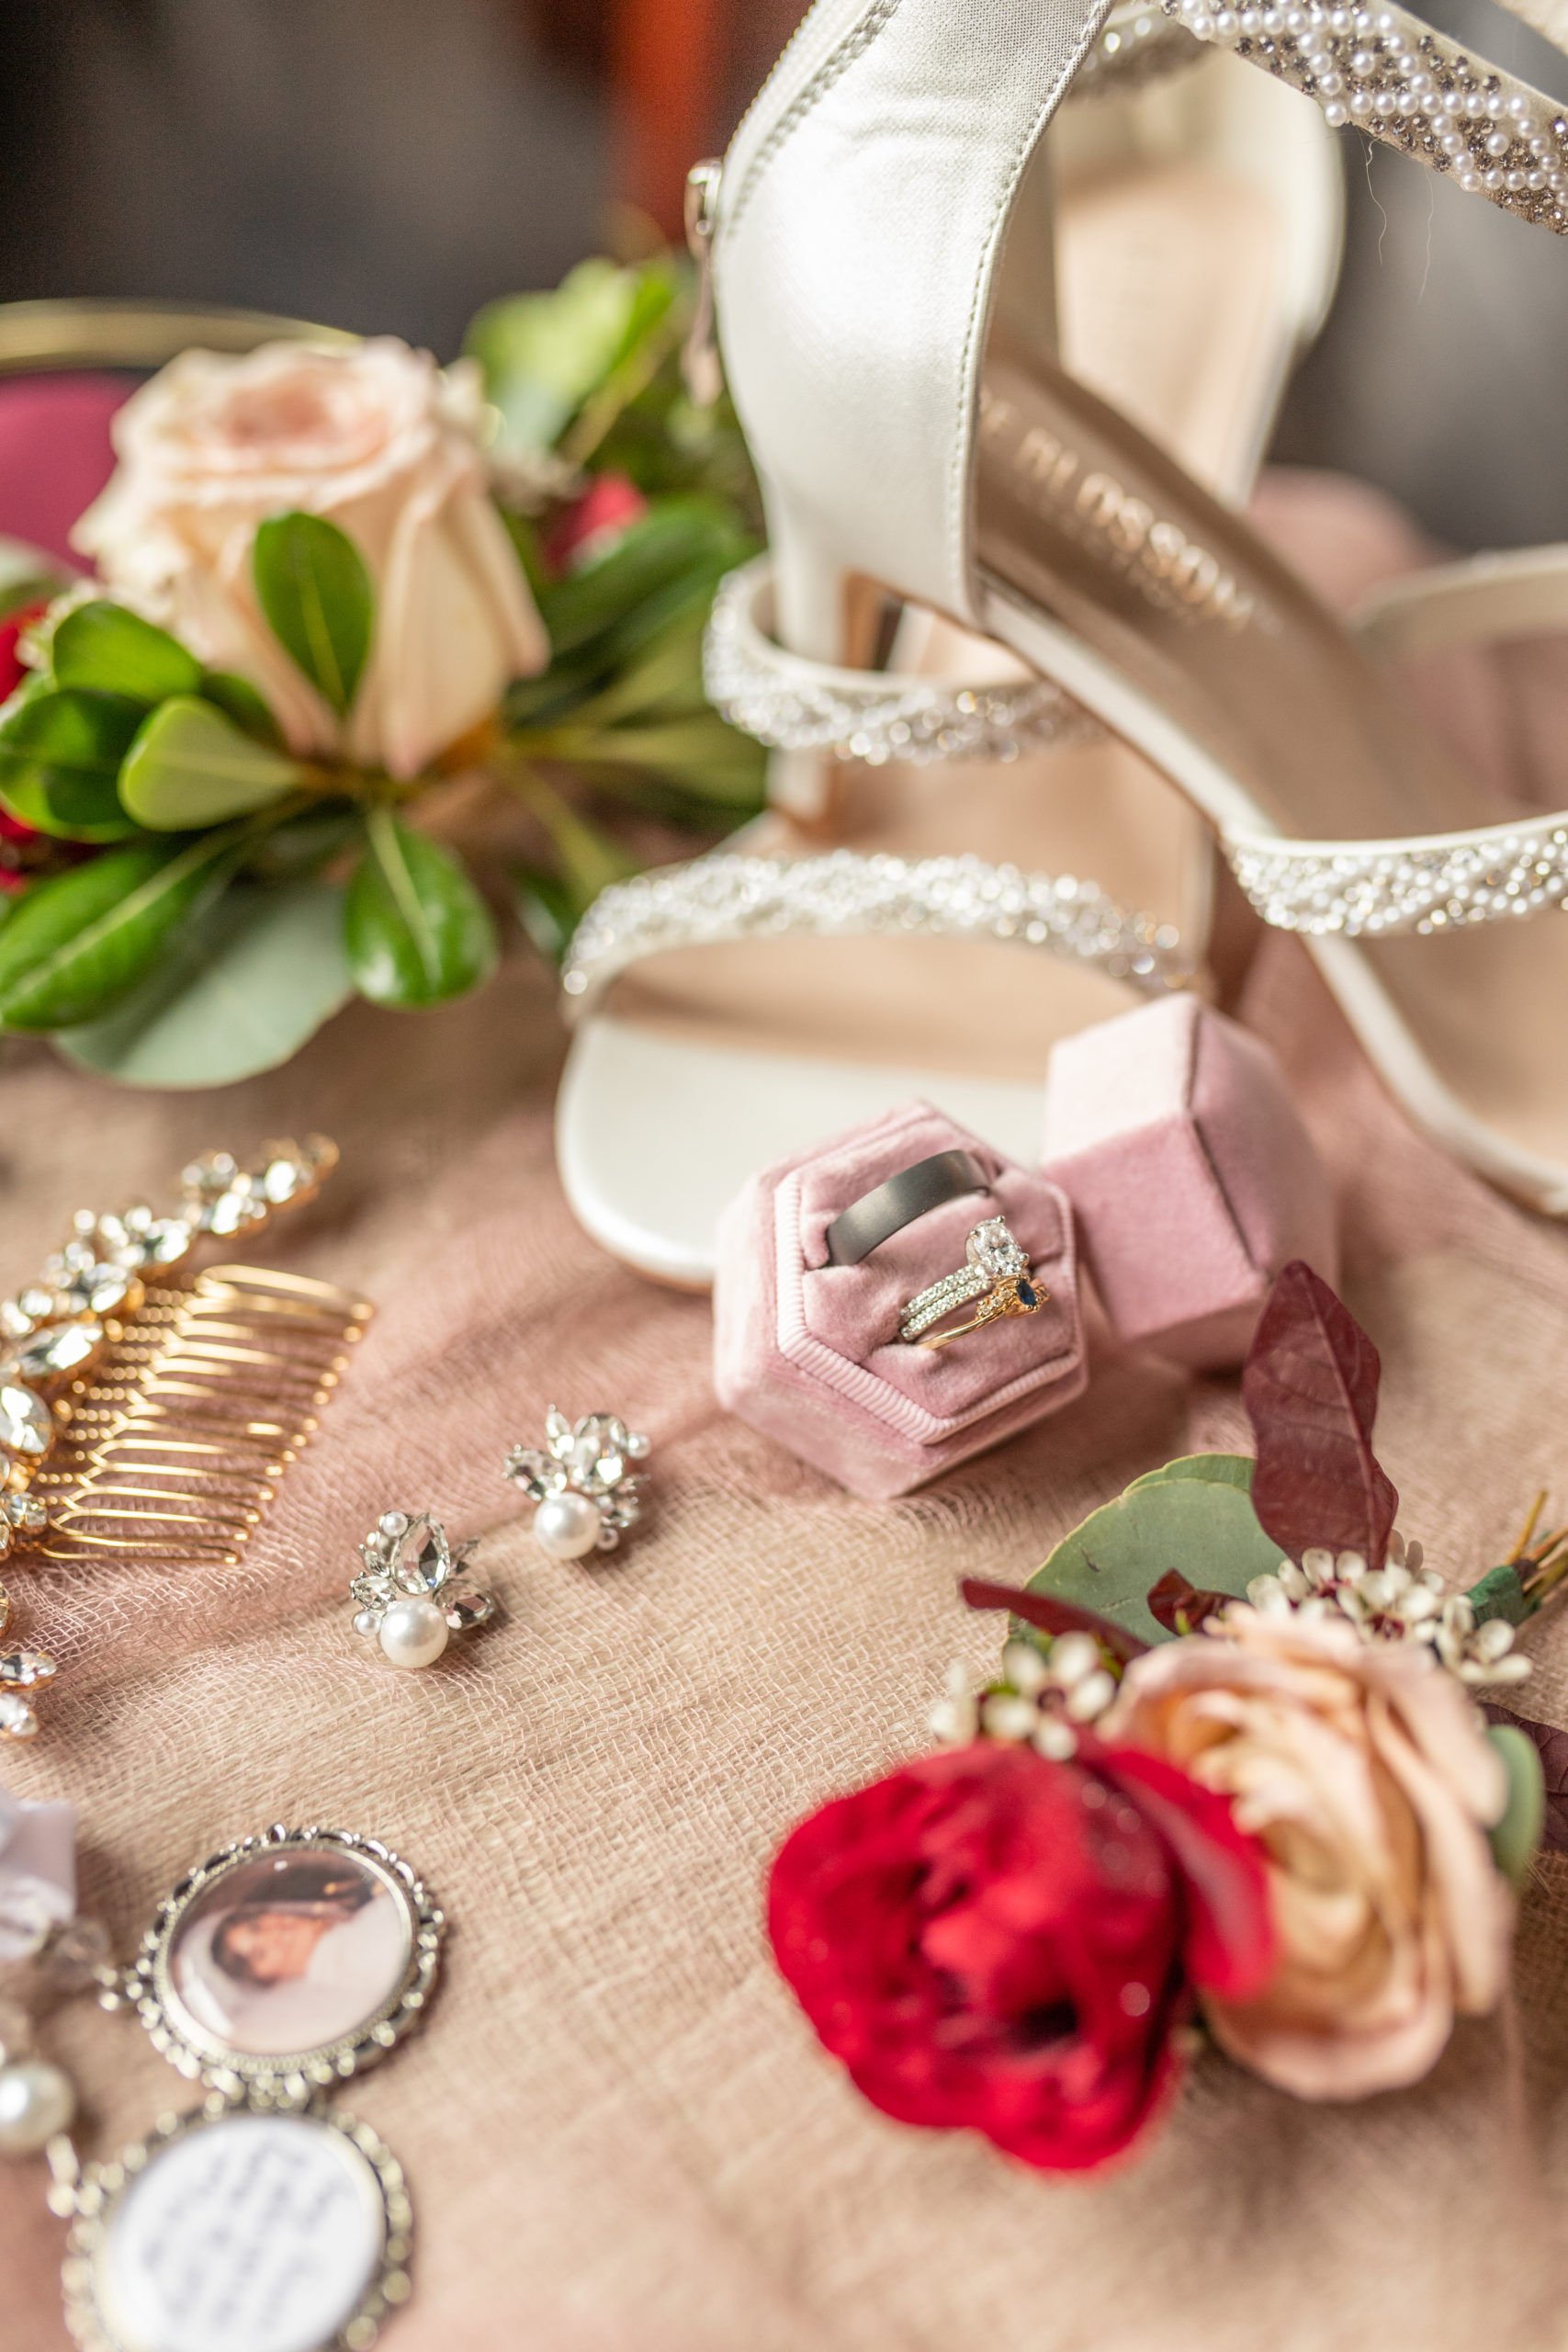 wedding day details, bride's details, diamond earrings, jeweled gold hair comb, light pink, red roses wedding heels,bride and groom, pine tree forest, southern illinois photography